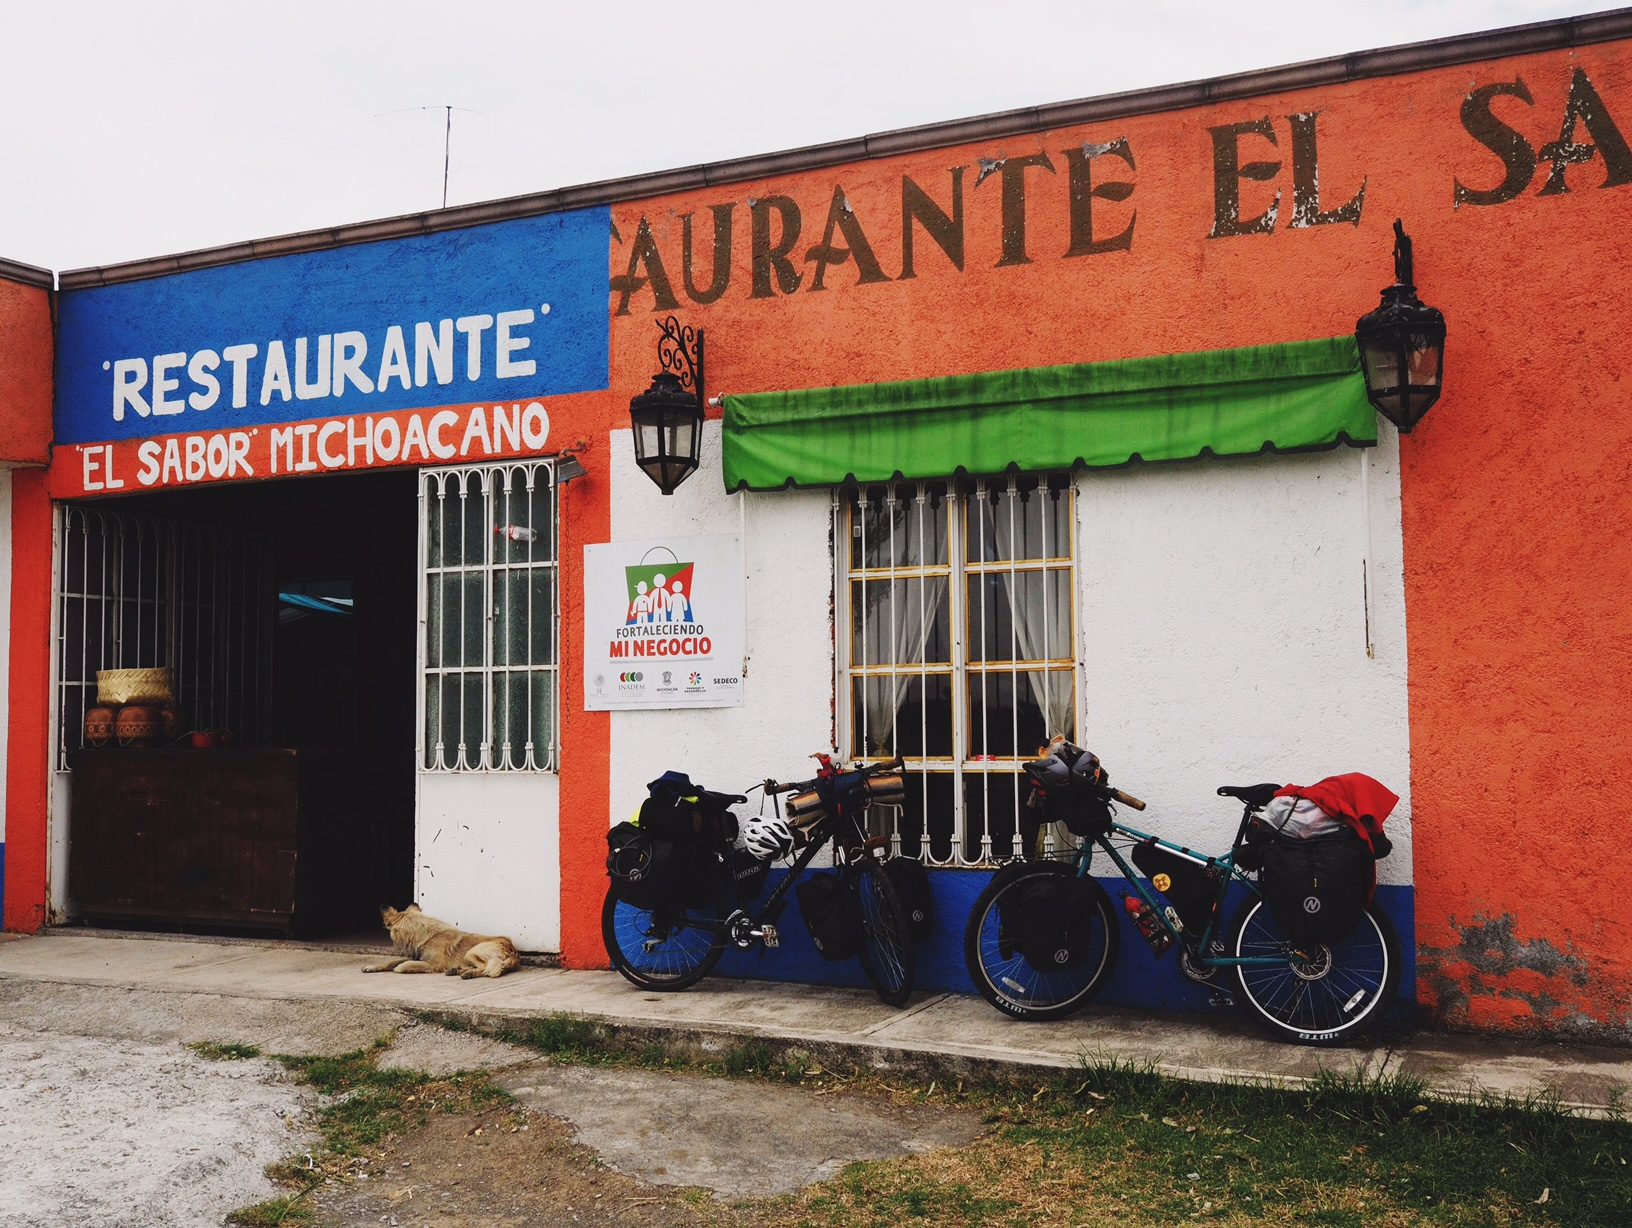 Dipped in for a quick bite at this roadside restaurant outside Morelia